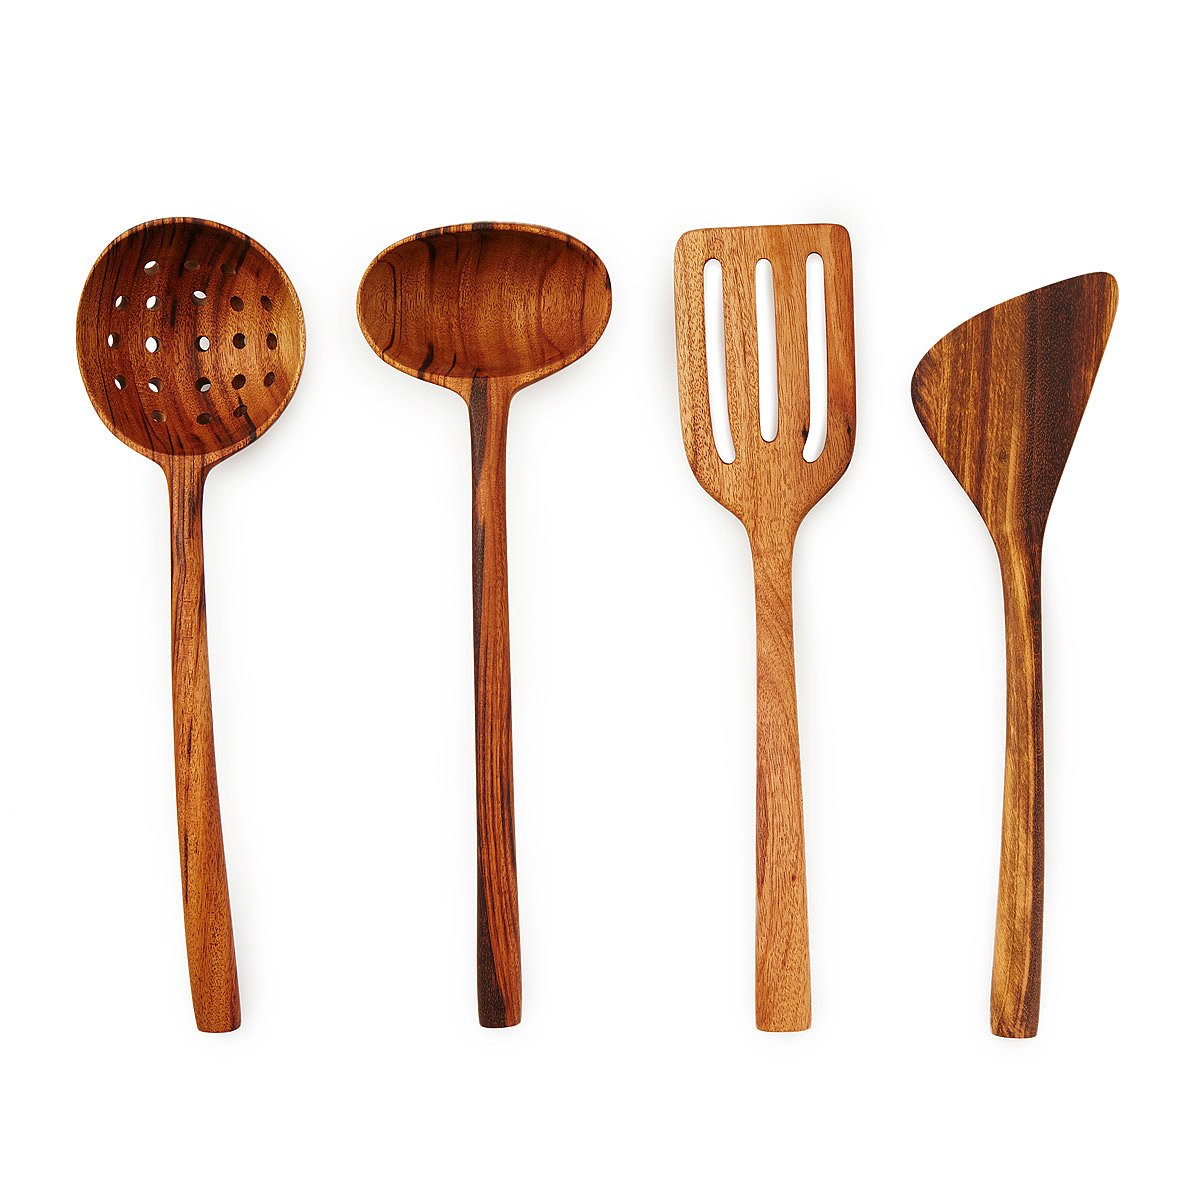 Peralatan Kitchen Wooden Kitchen Utensils Wood Tools For Cooking Uncommongoods